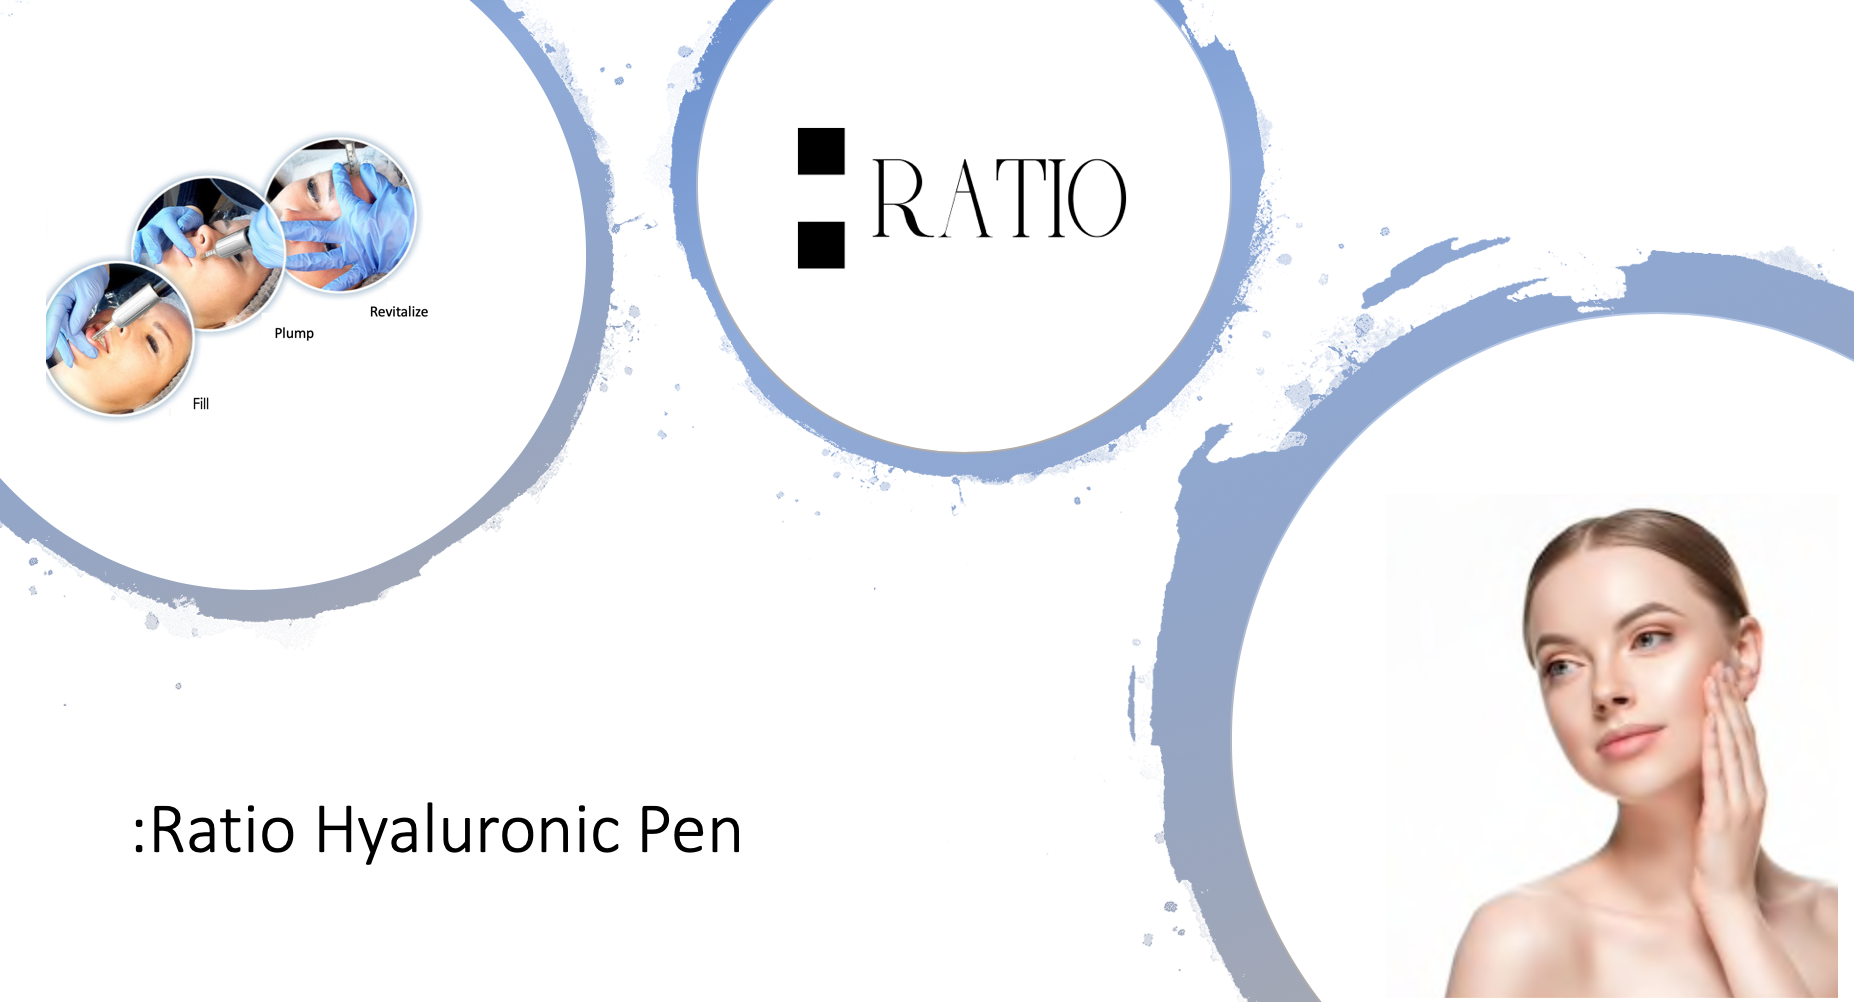 Ratio Hyaluronic Pen logo and image of use of filler pen